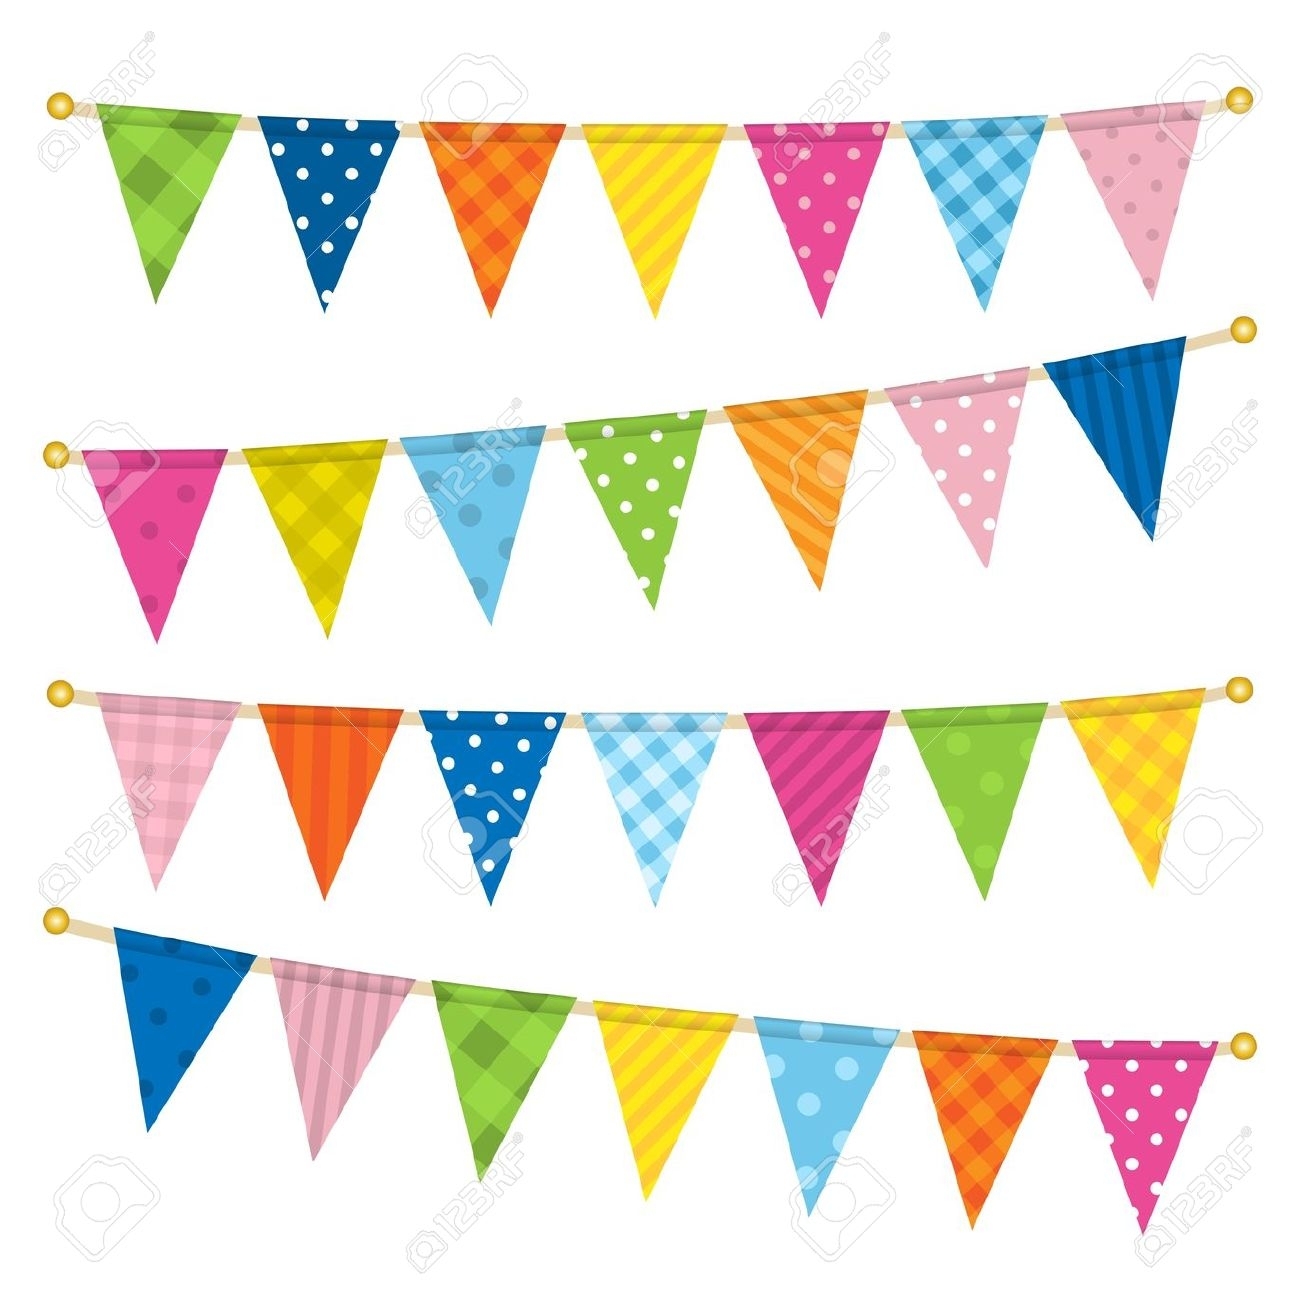 Carnival clipart flag banner Free Download Clip Flags Art